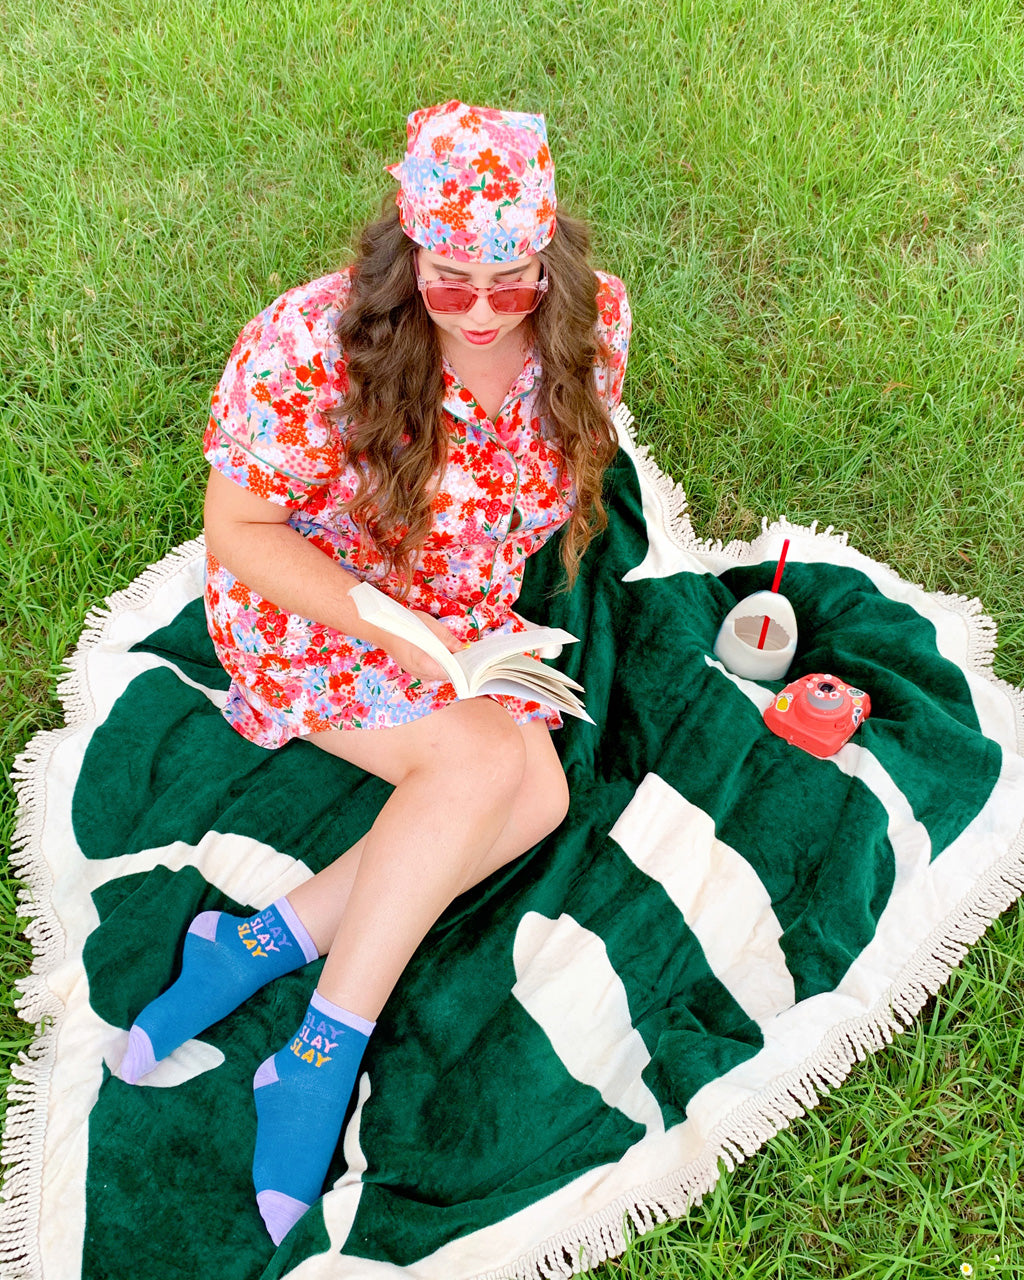 woman wearing short sleeve leisure dress in pink floral with matching bandana tied around her head with blue socks. she is lying on a leaf shaped towel on the grass